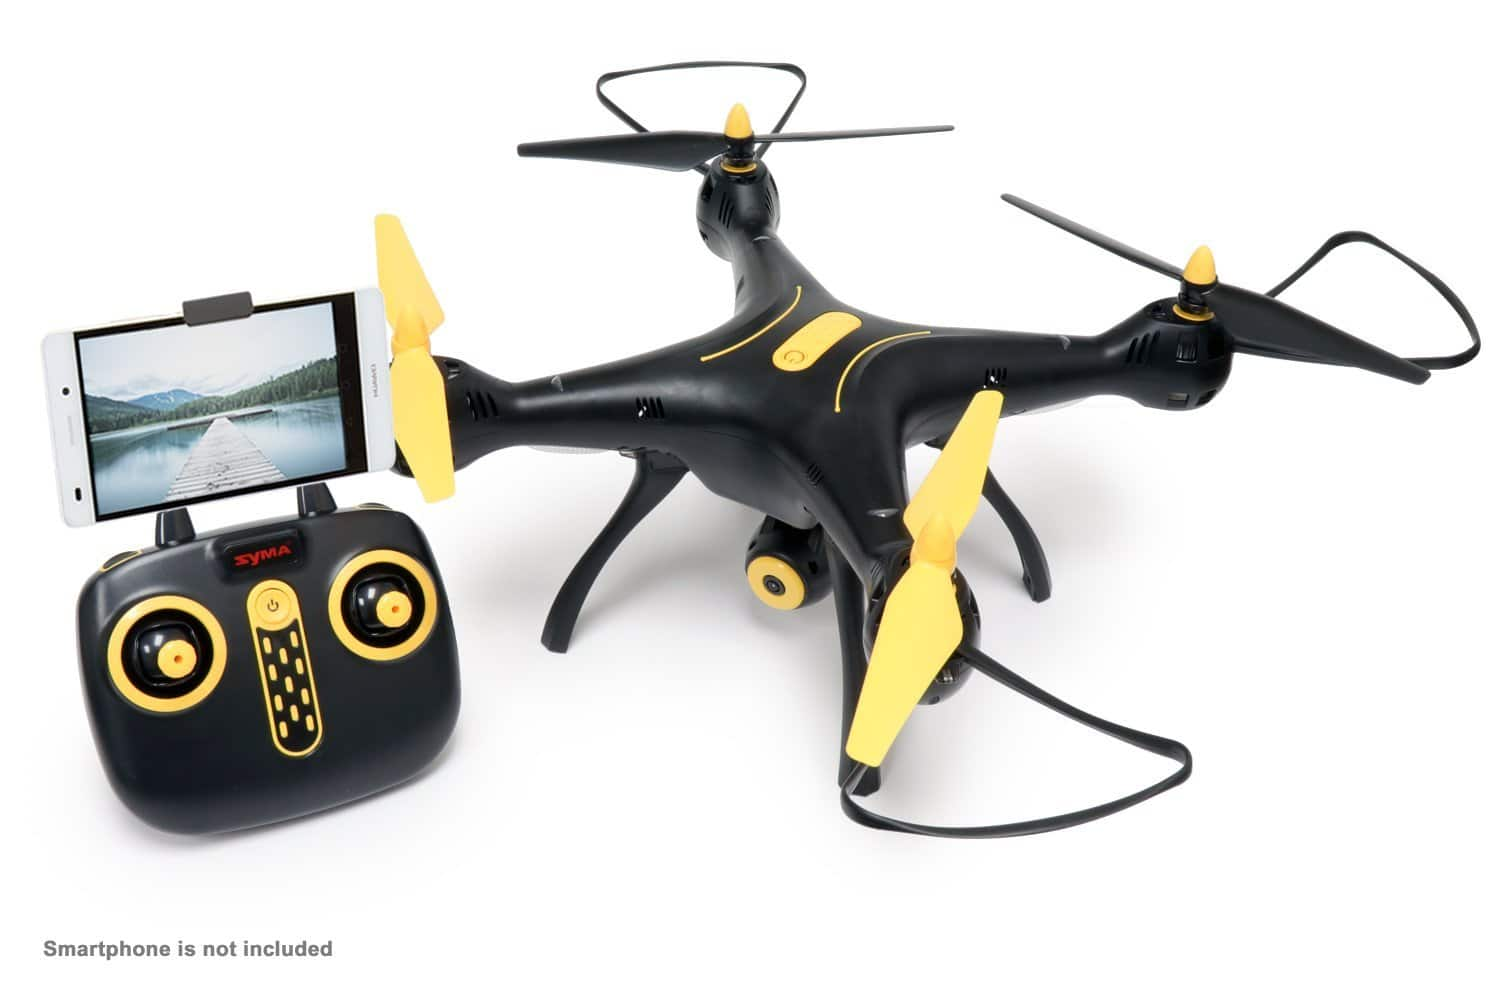 Tenergy Syma X8SW Wi-Fi FPV Quadcopter Drone 720P HD Camera Altitude Hold  $104 after 20% off coupon